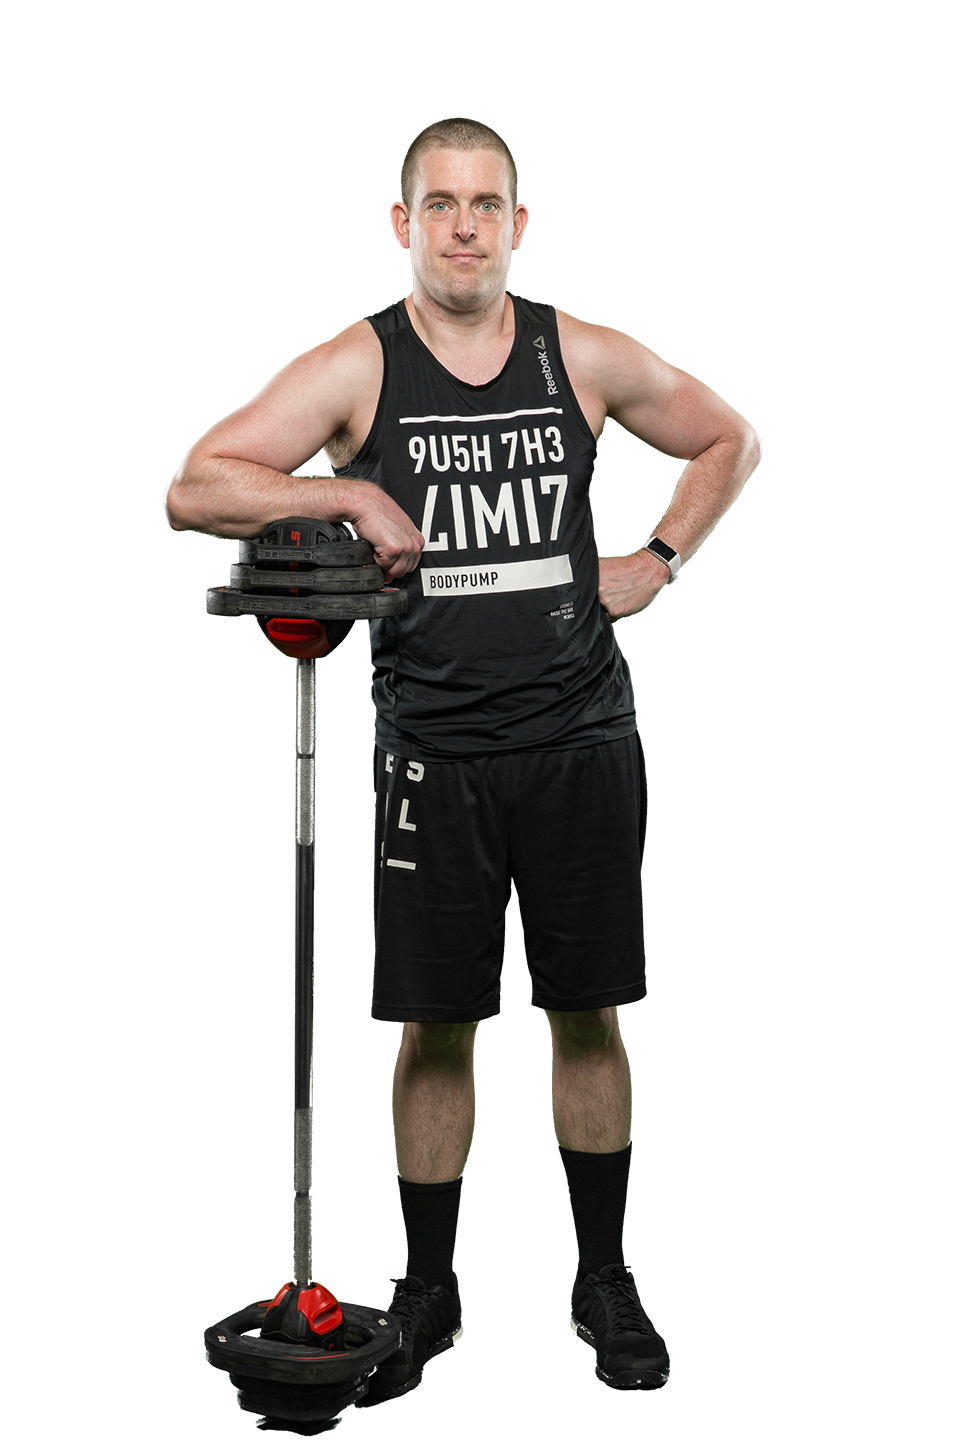 Ryan - CXWORX and BodyPump InstructorRyan is a longtime distance runner who became certified in BODYPUMP in 2010 and CXWORX in 2017, and earned Elite Certification for Pump in 2017. Aspires to be a LM Assessor and/or presenter. Longtime journalist as well.Favorite quote: